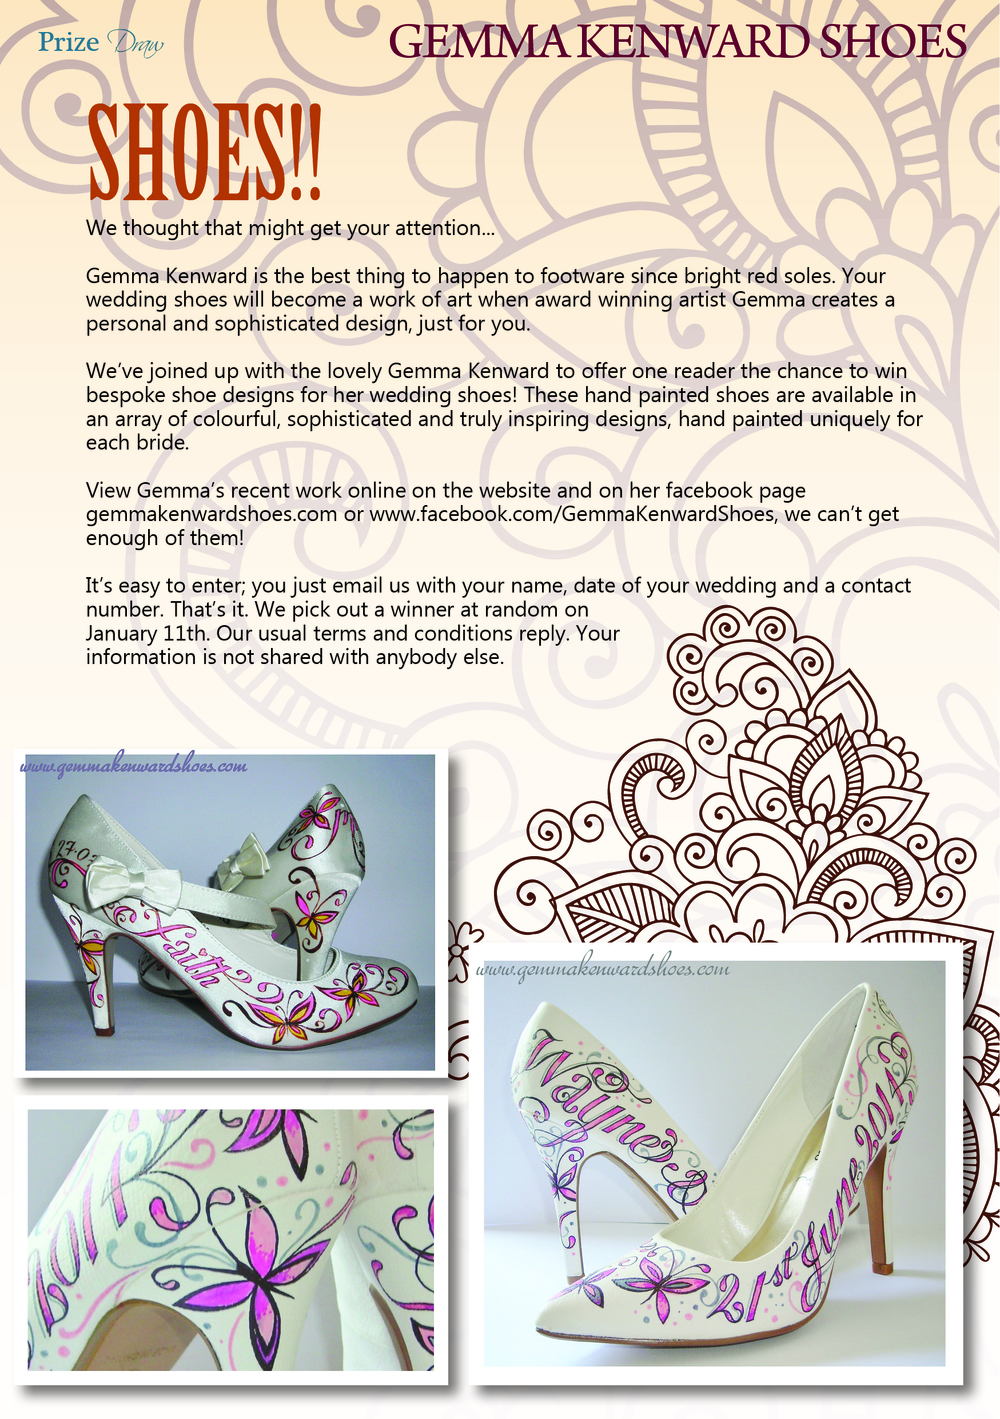 Hand Painted Wedding Shoes by Gemma Kenward competition with Something Borrowed Magazine